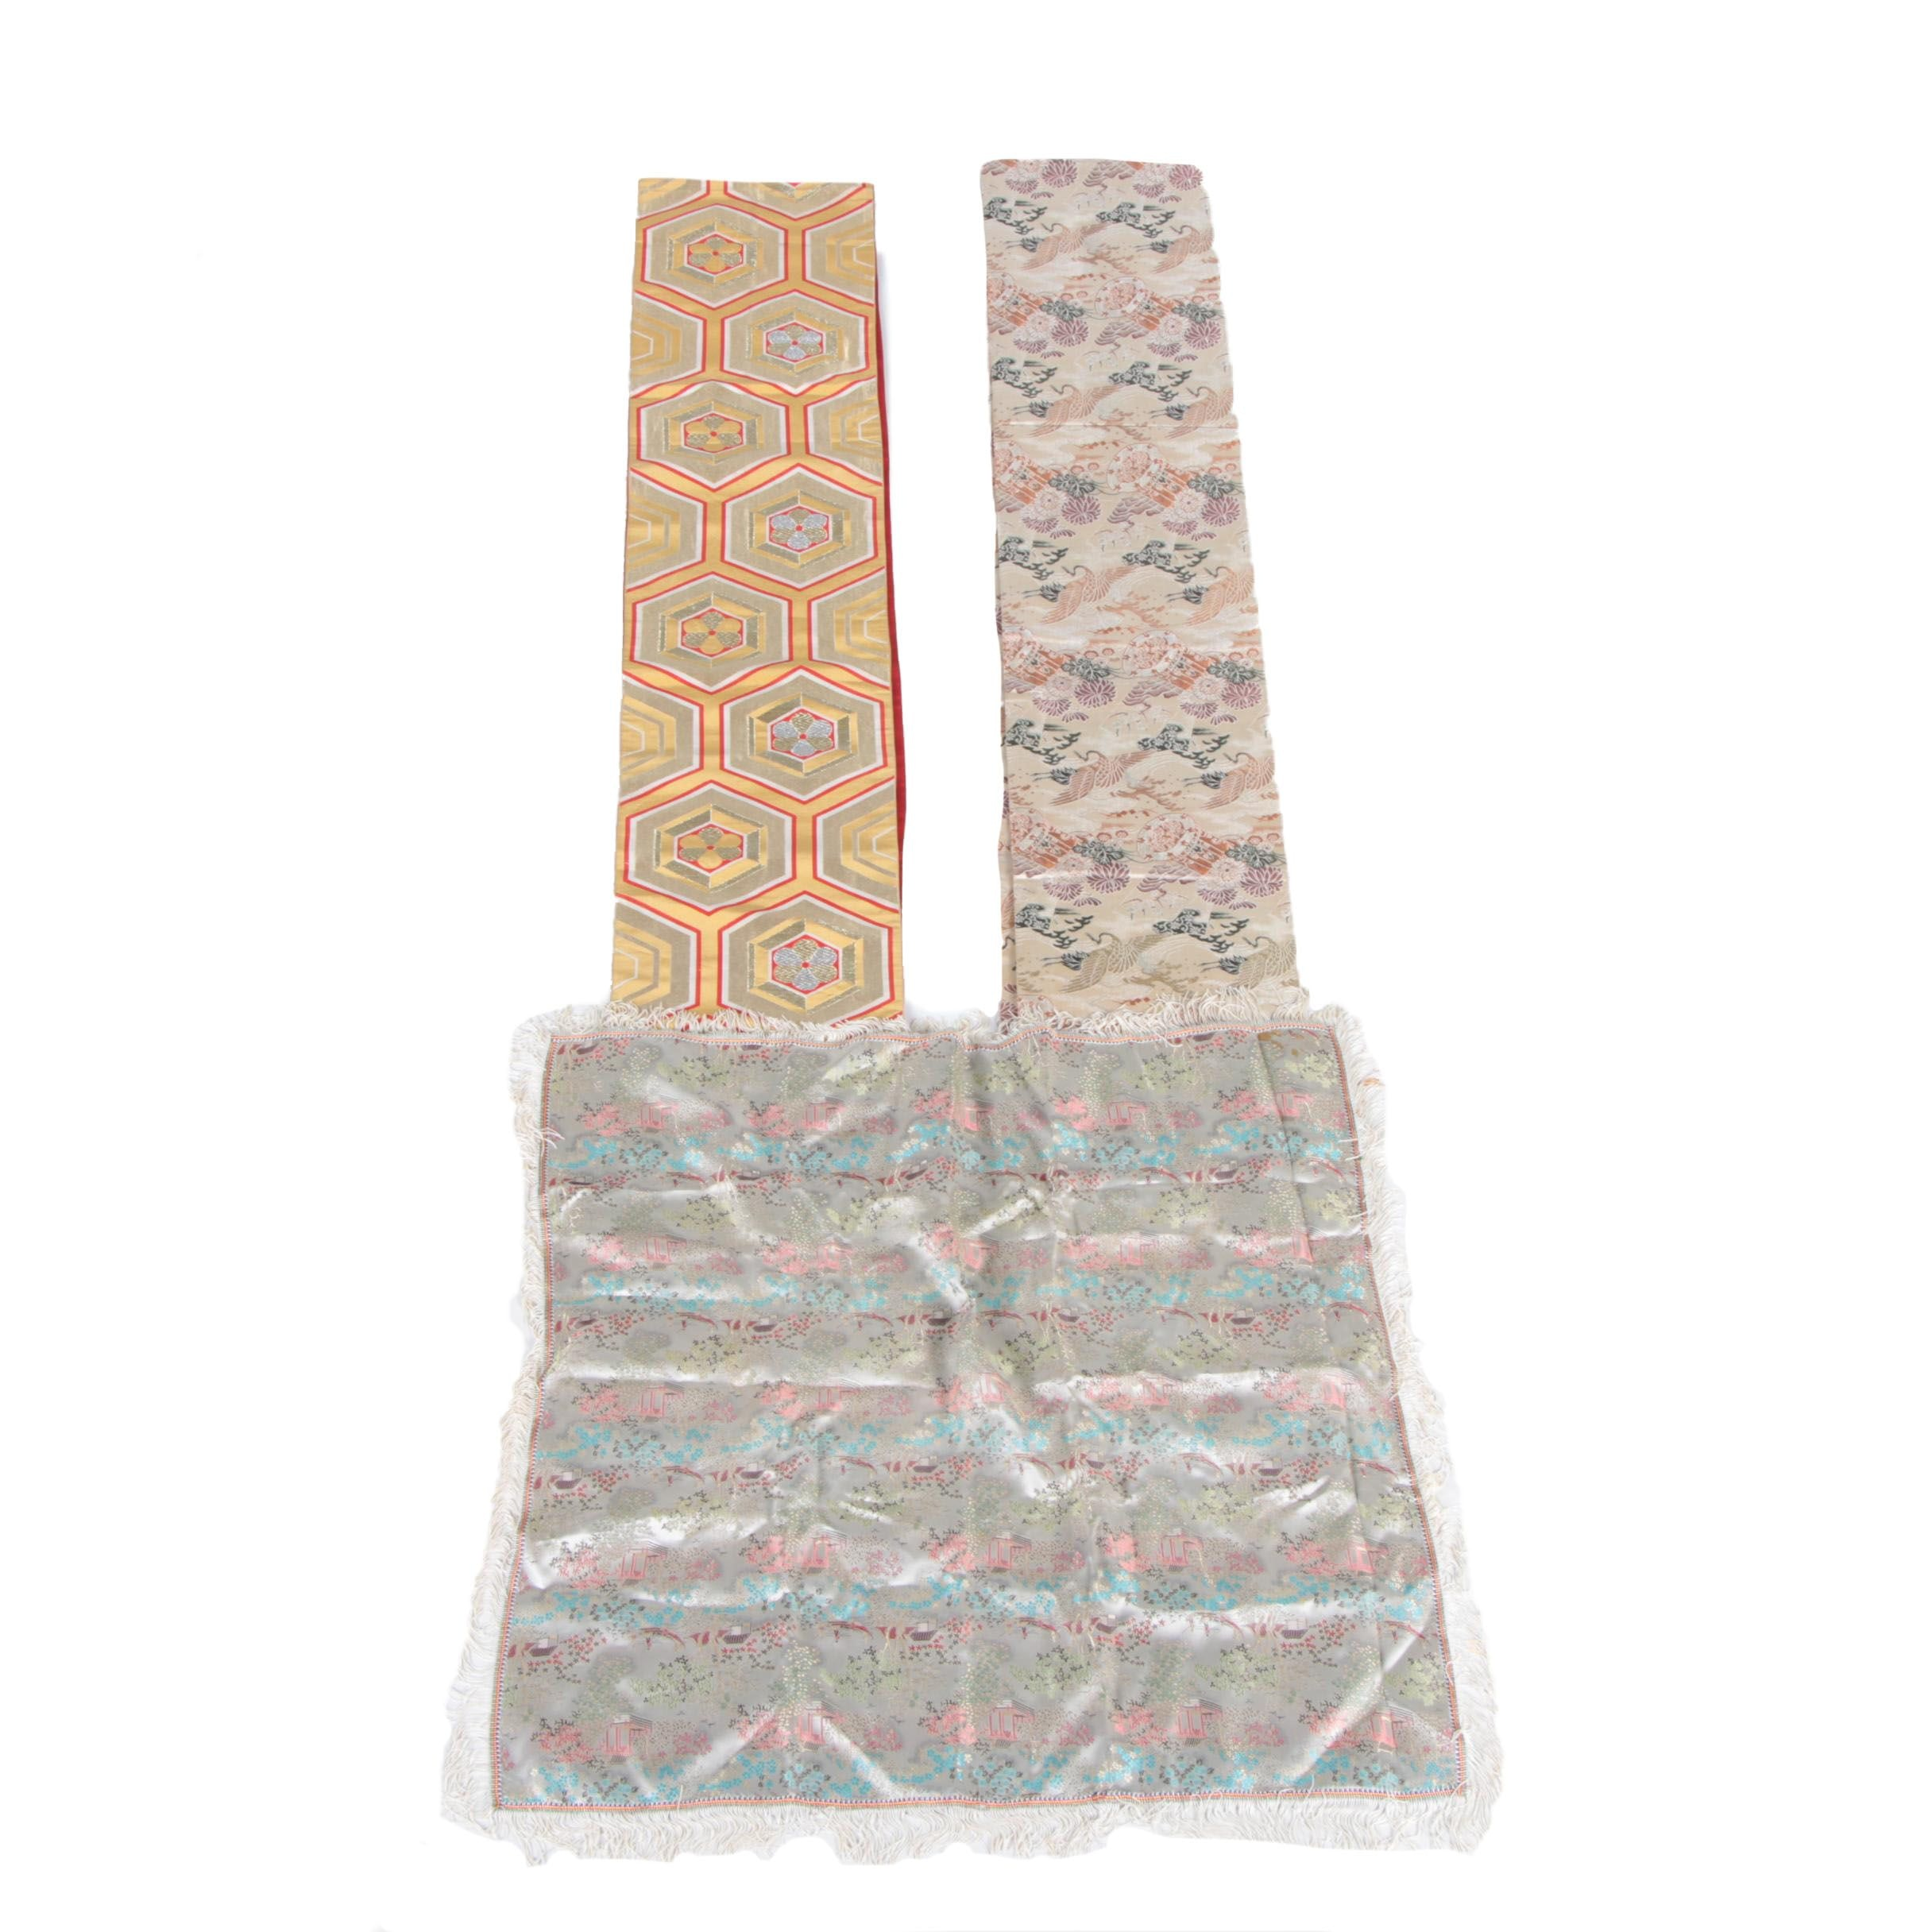 Embroidered Asian Influenced Silk Decorative Textiles